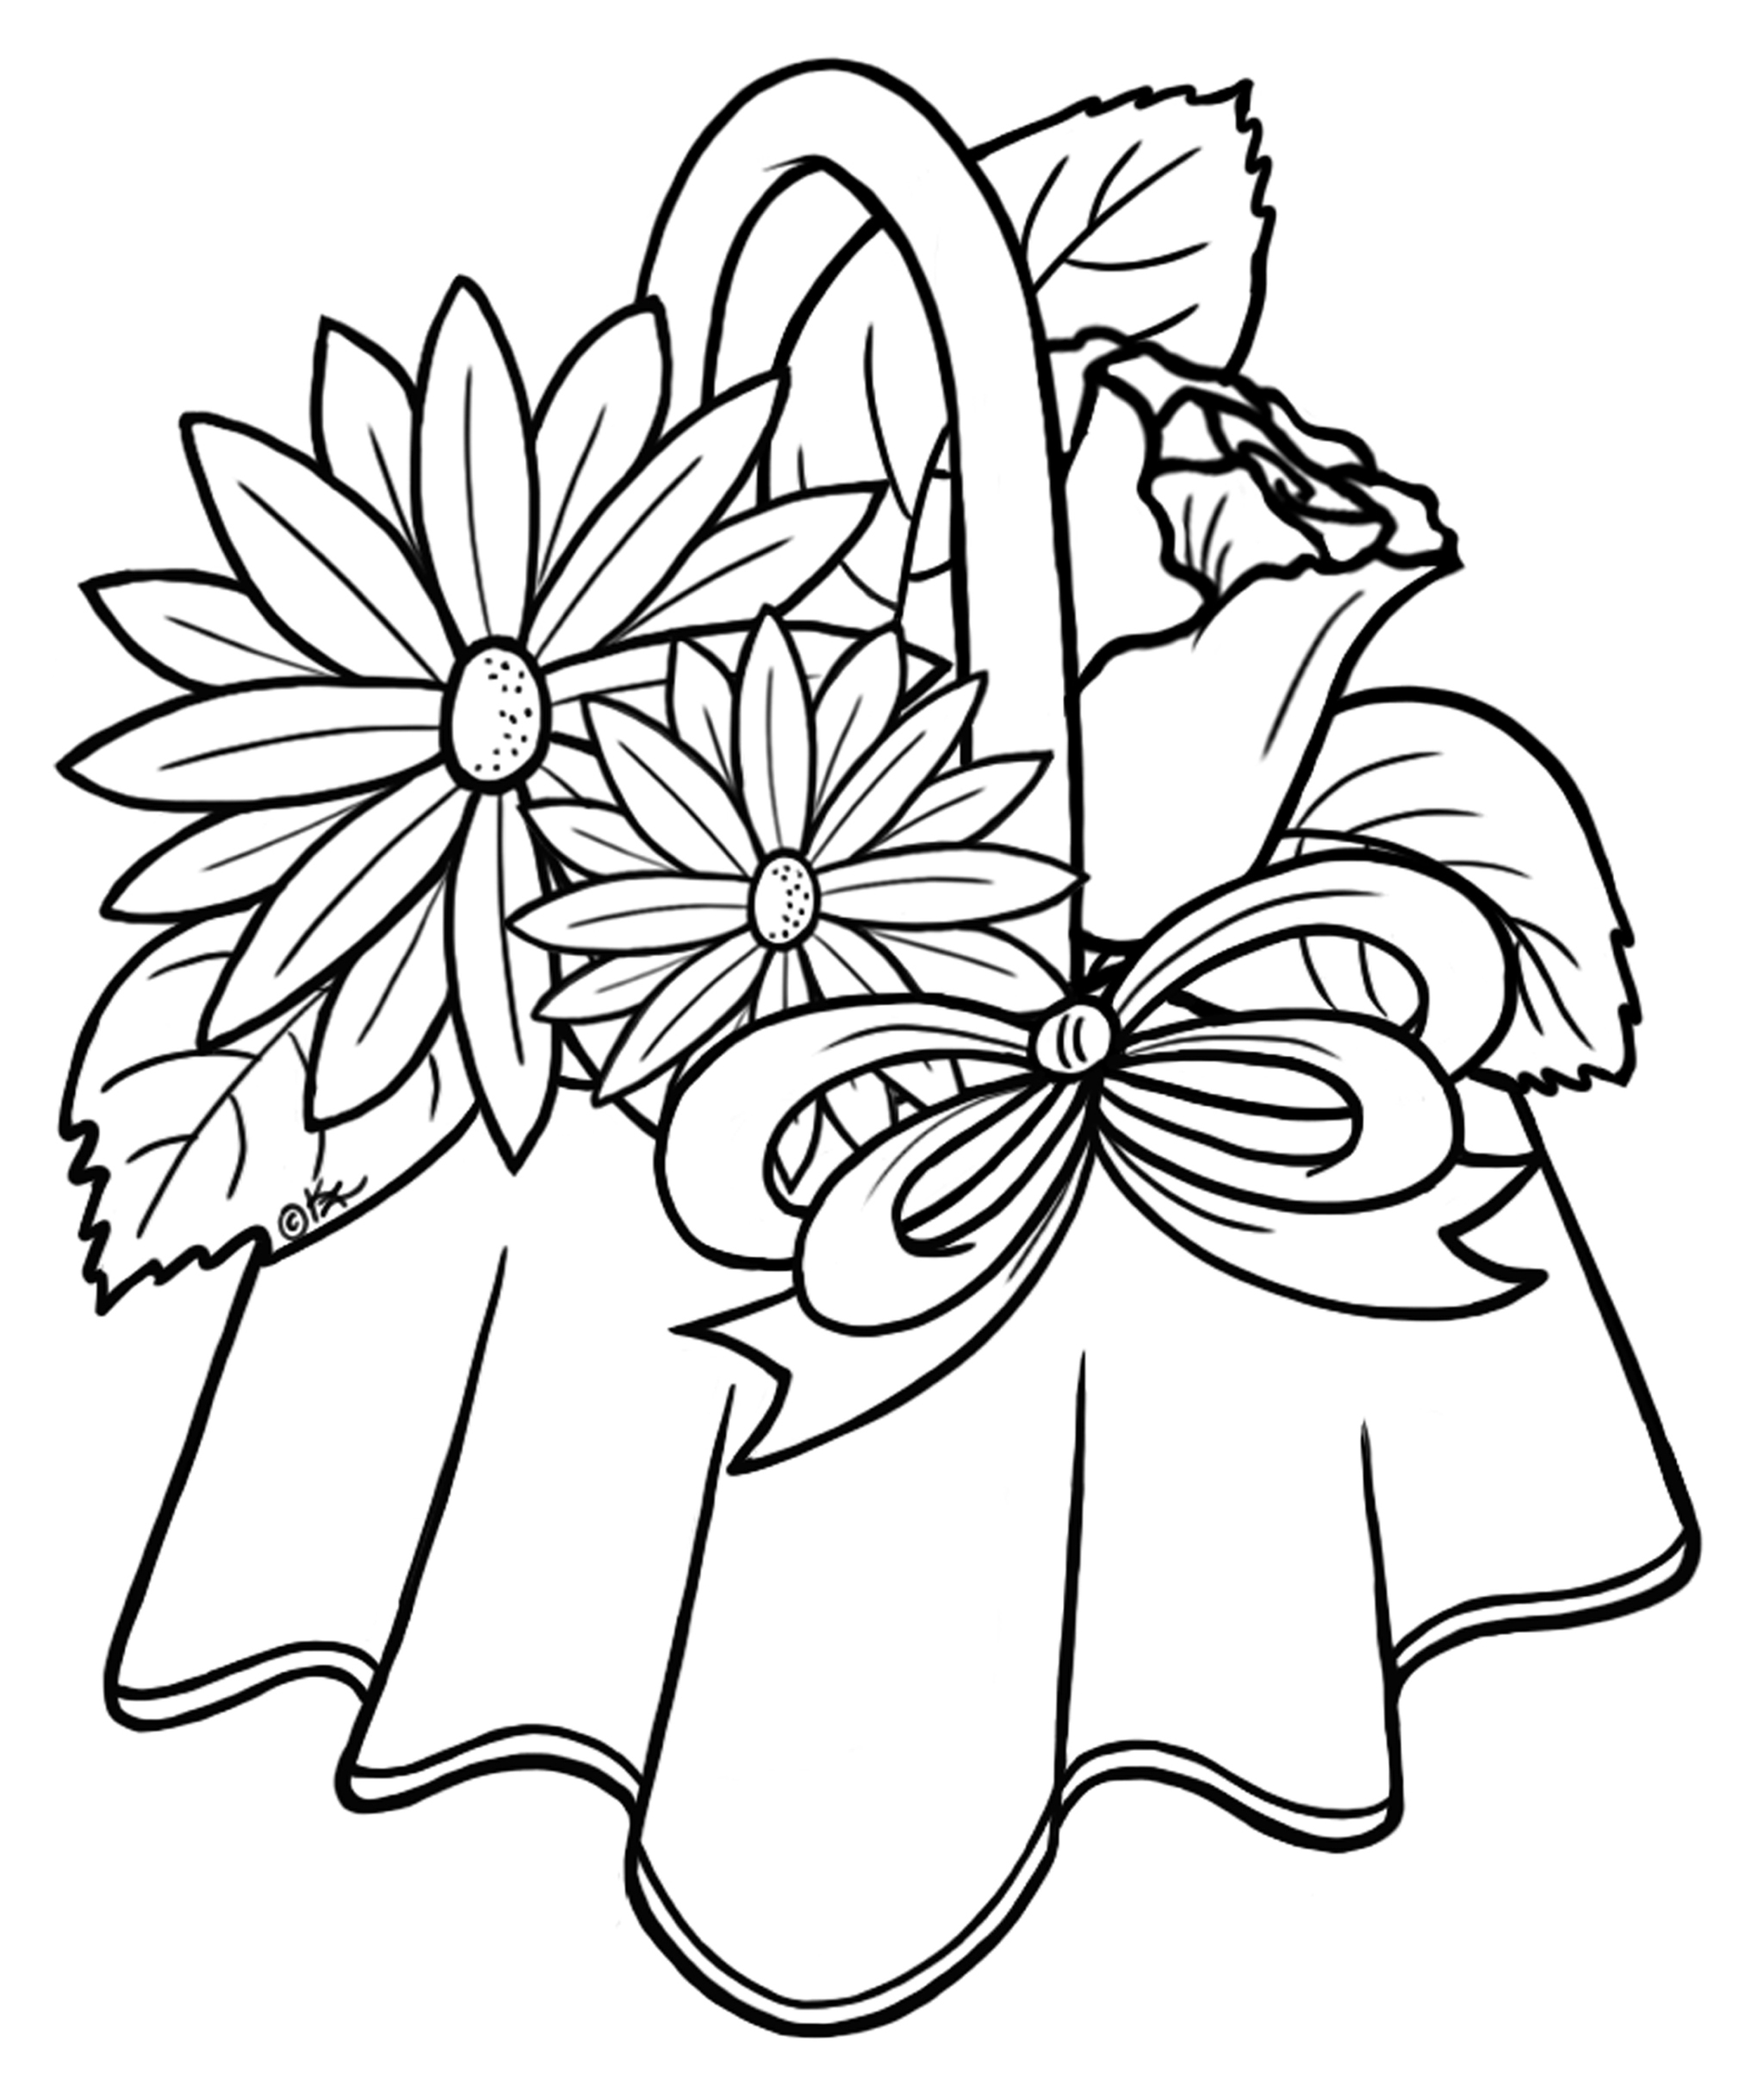 how to draw bouquet of flowers how to draw a bouquet of flowers step by step drawing flowers of draw how bouquet to